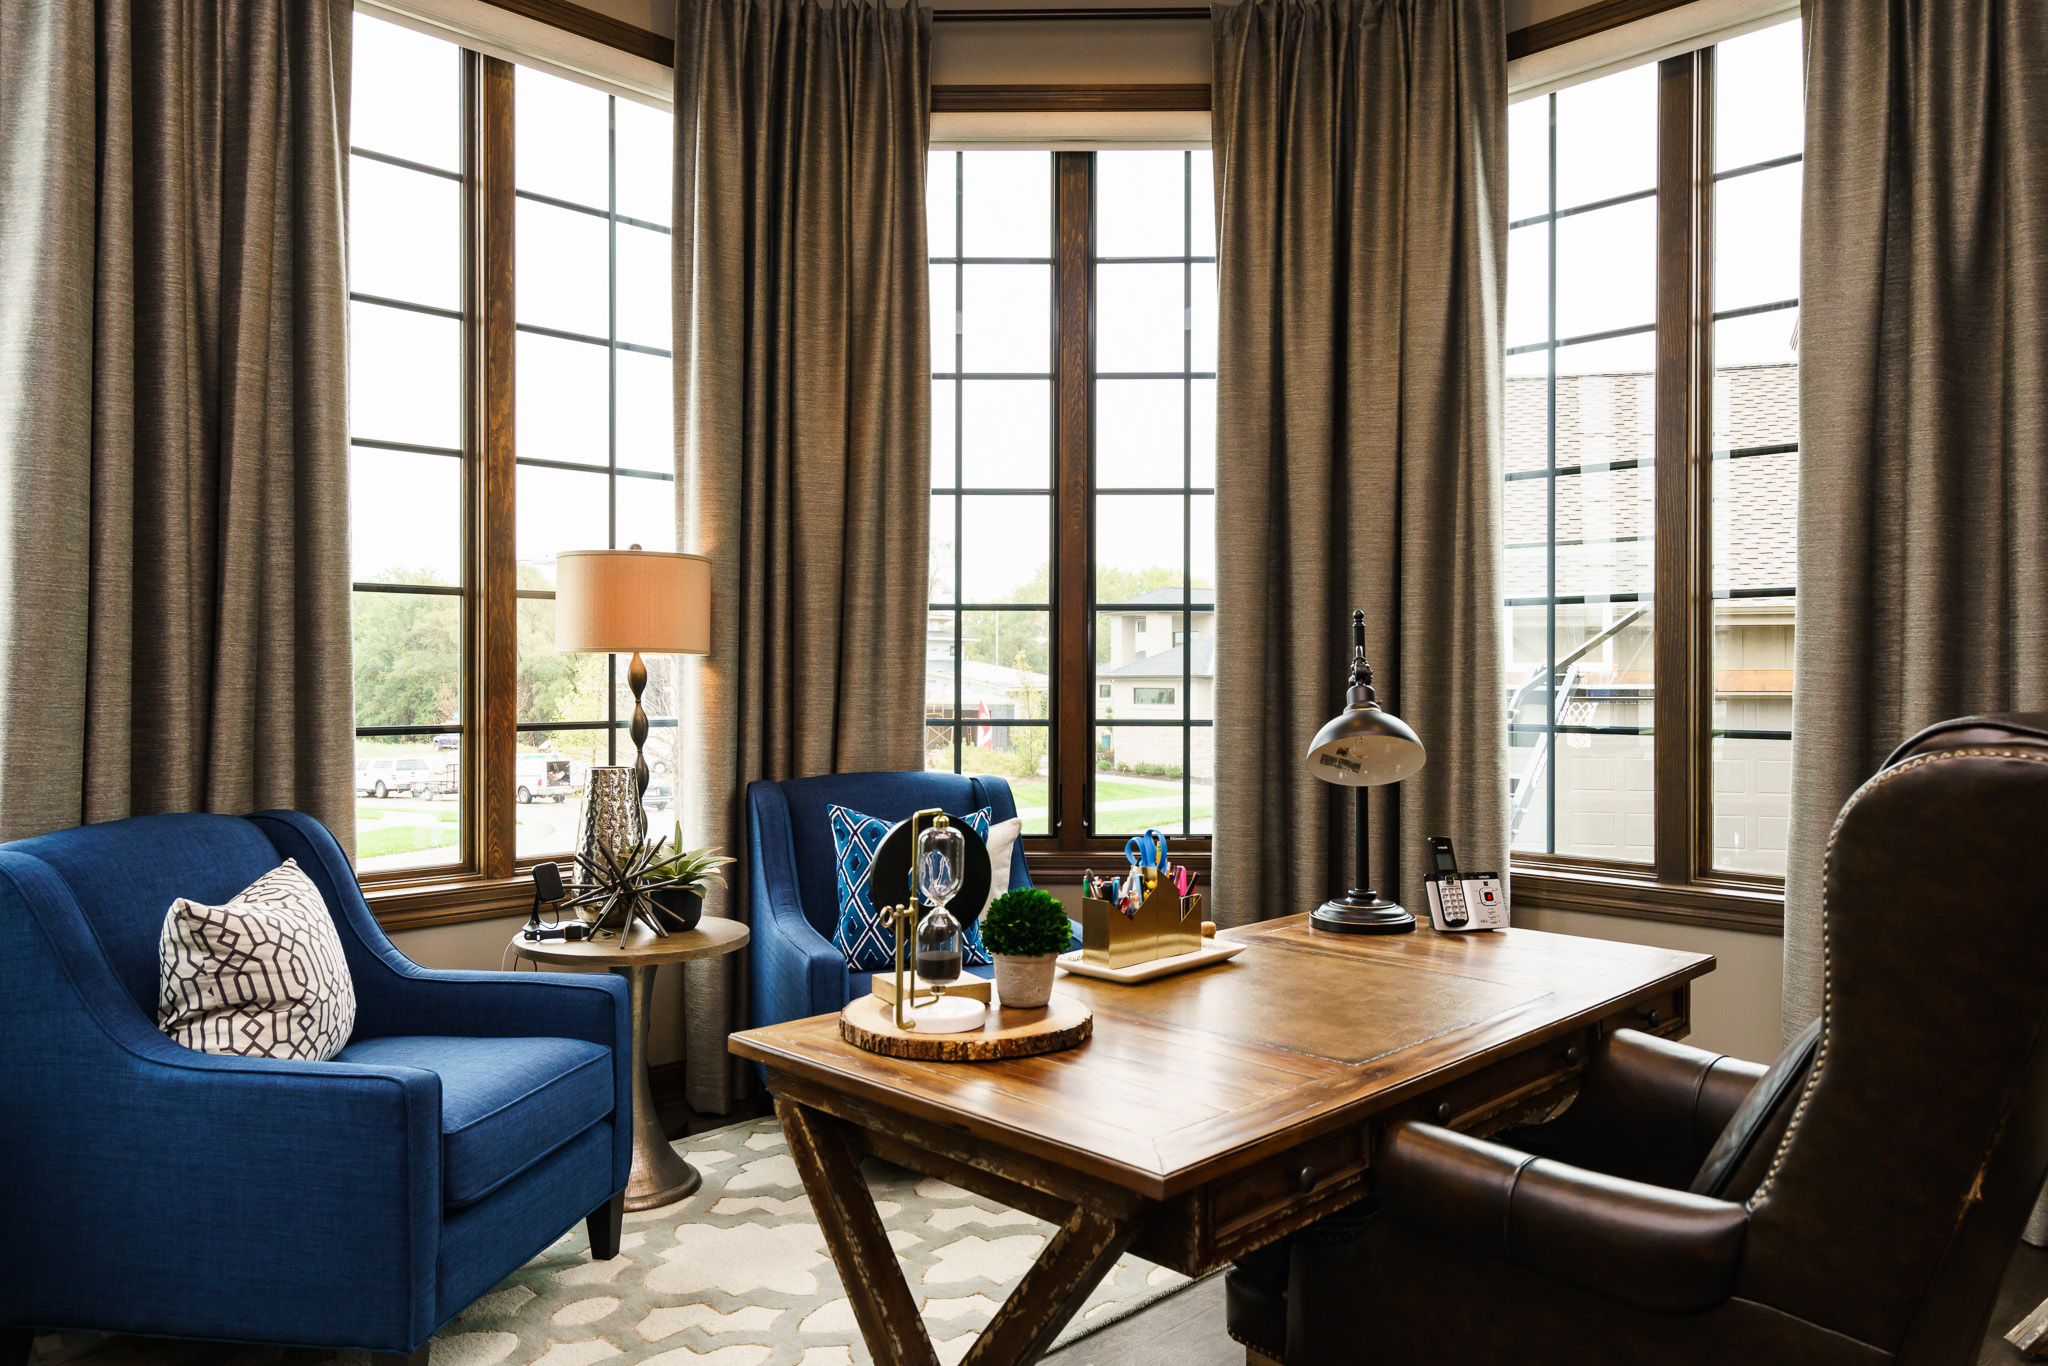 Fluff Interior Design To Quote Our Clientu2026let Fluff U201cTake The Home Office  Blue Omaha Interior Designer Fluff To Quote Our Client Let Fluff Take The  Stress ...